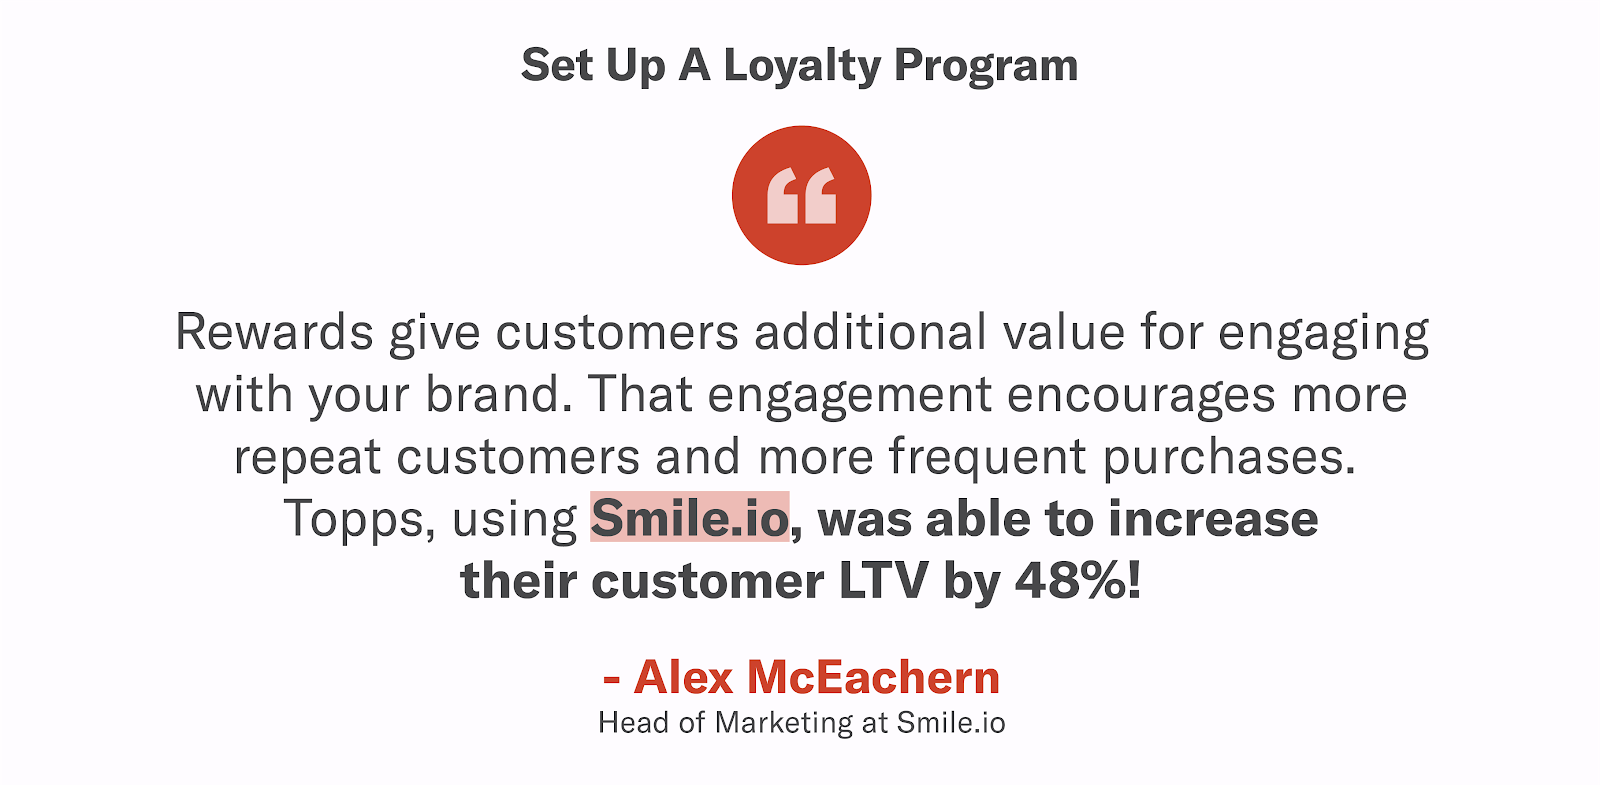 According to Alex McEachern at Smile.io - Topps grew LTV 48% by using a Smile Loyalty Program